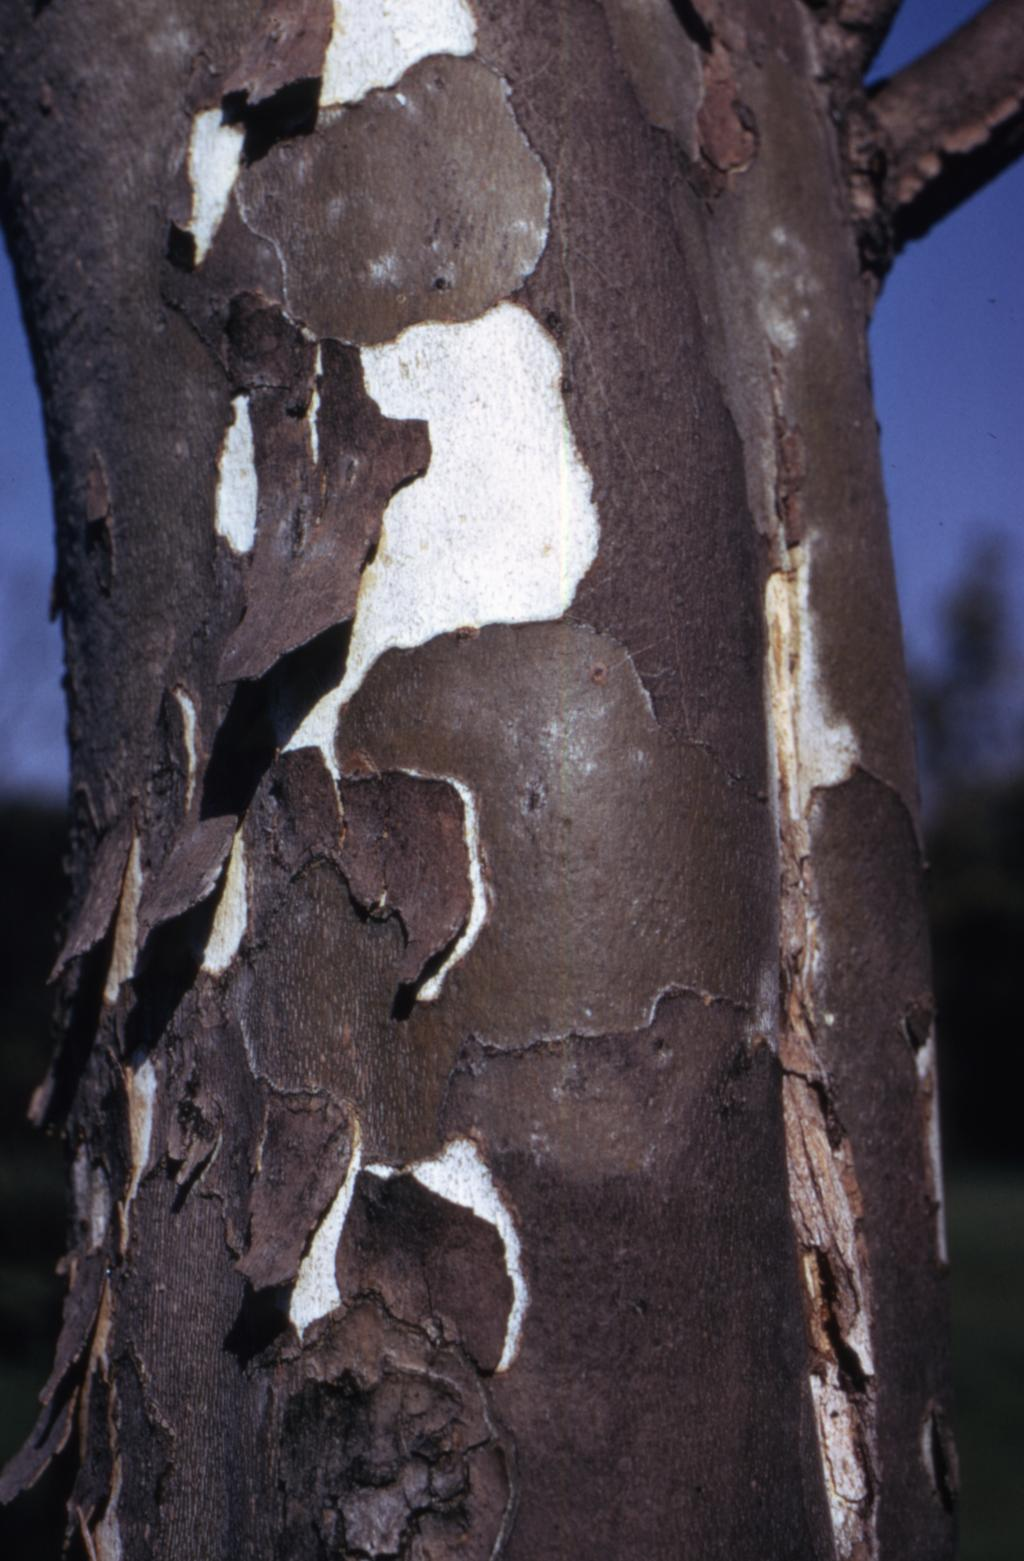 This photograph depicts a close-up of the trunk of a Sycamore tree. In the image, you can see the tree's grey bark peeling away from the trunk, exposing a white colored trunk.